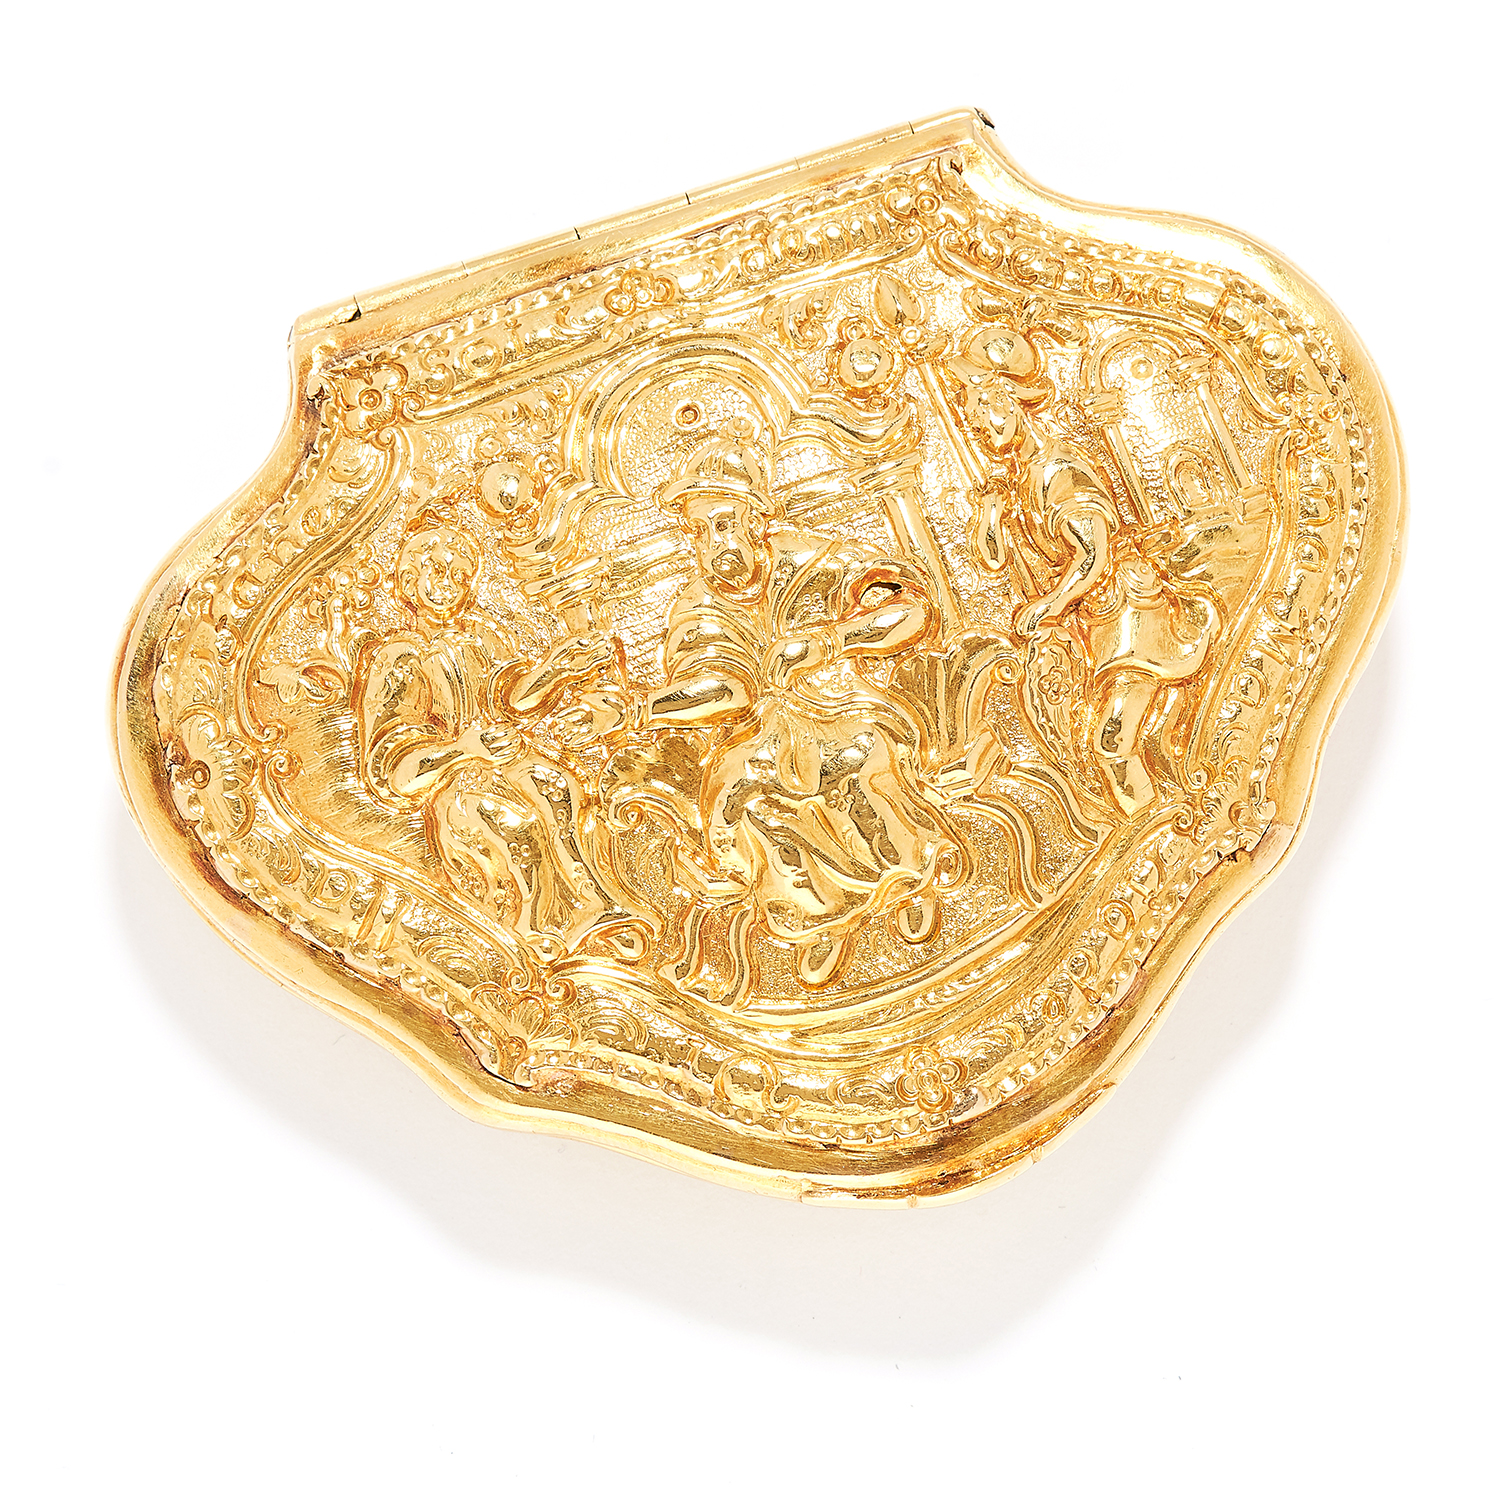 ANTIQUE GOLD REGIMENTAL SNUFF BOX, CIRCA 1750 in 18ct yellow gold, the lid is set with a scene of